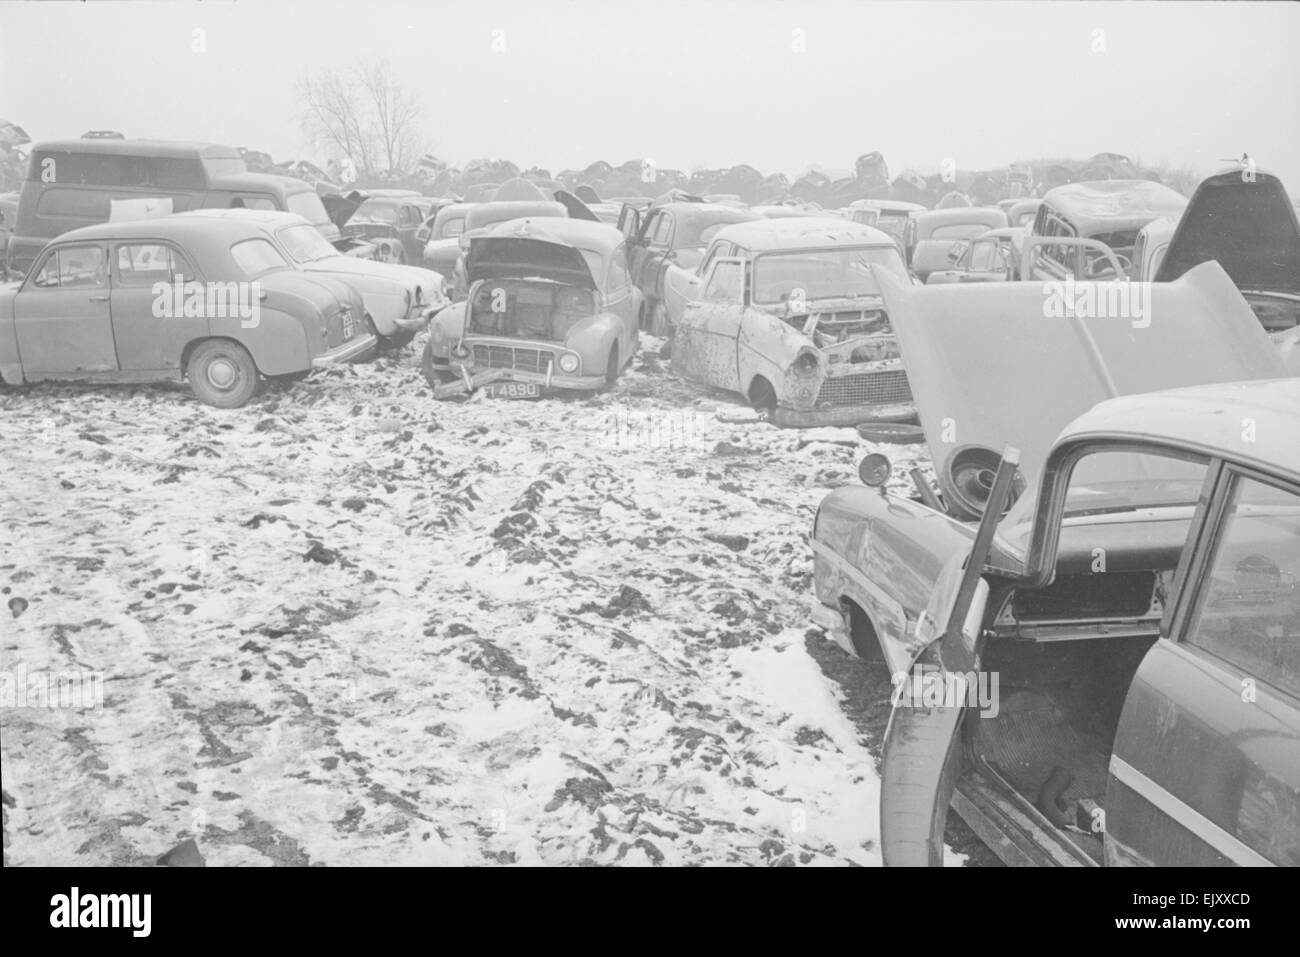 Some of the hundreds of scrap cars at the Jones Brothers junk yard near London. Circa 1964 - Stock Image